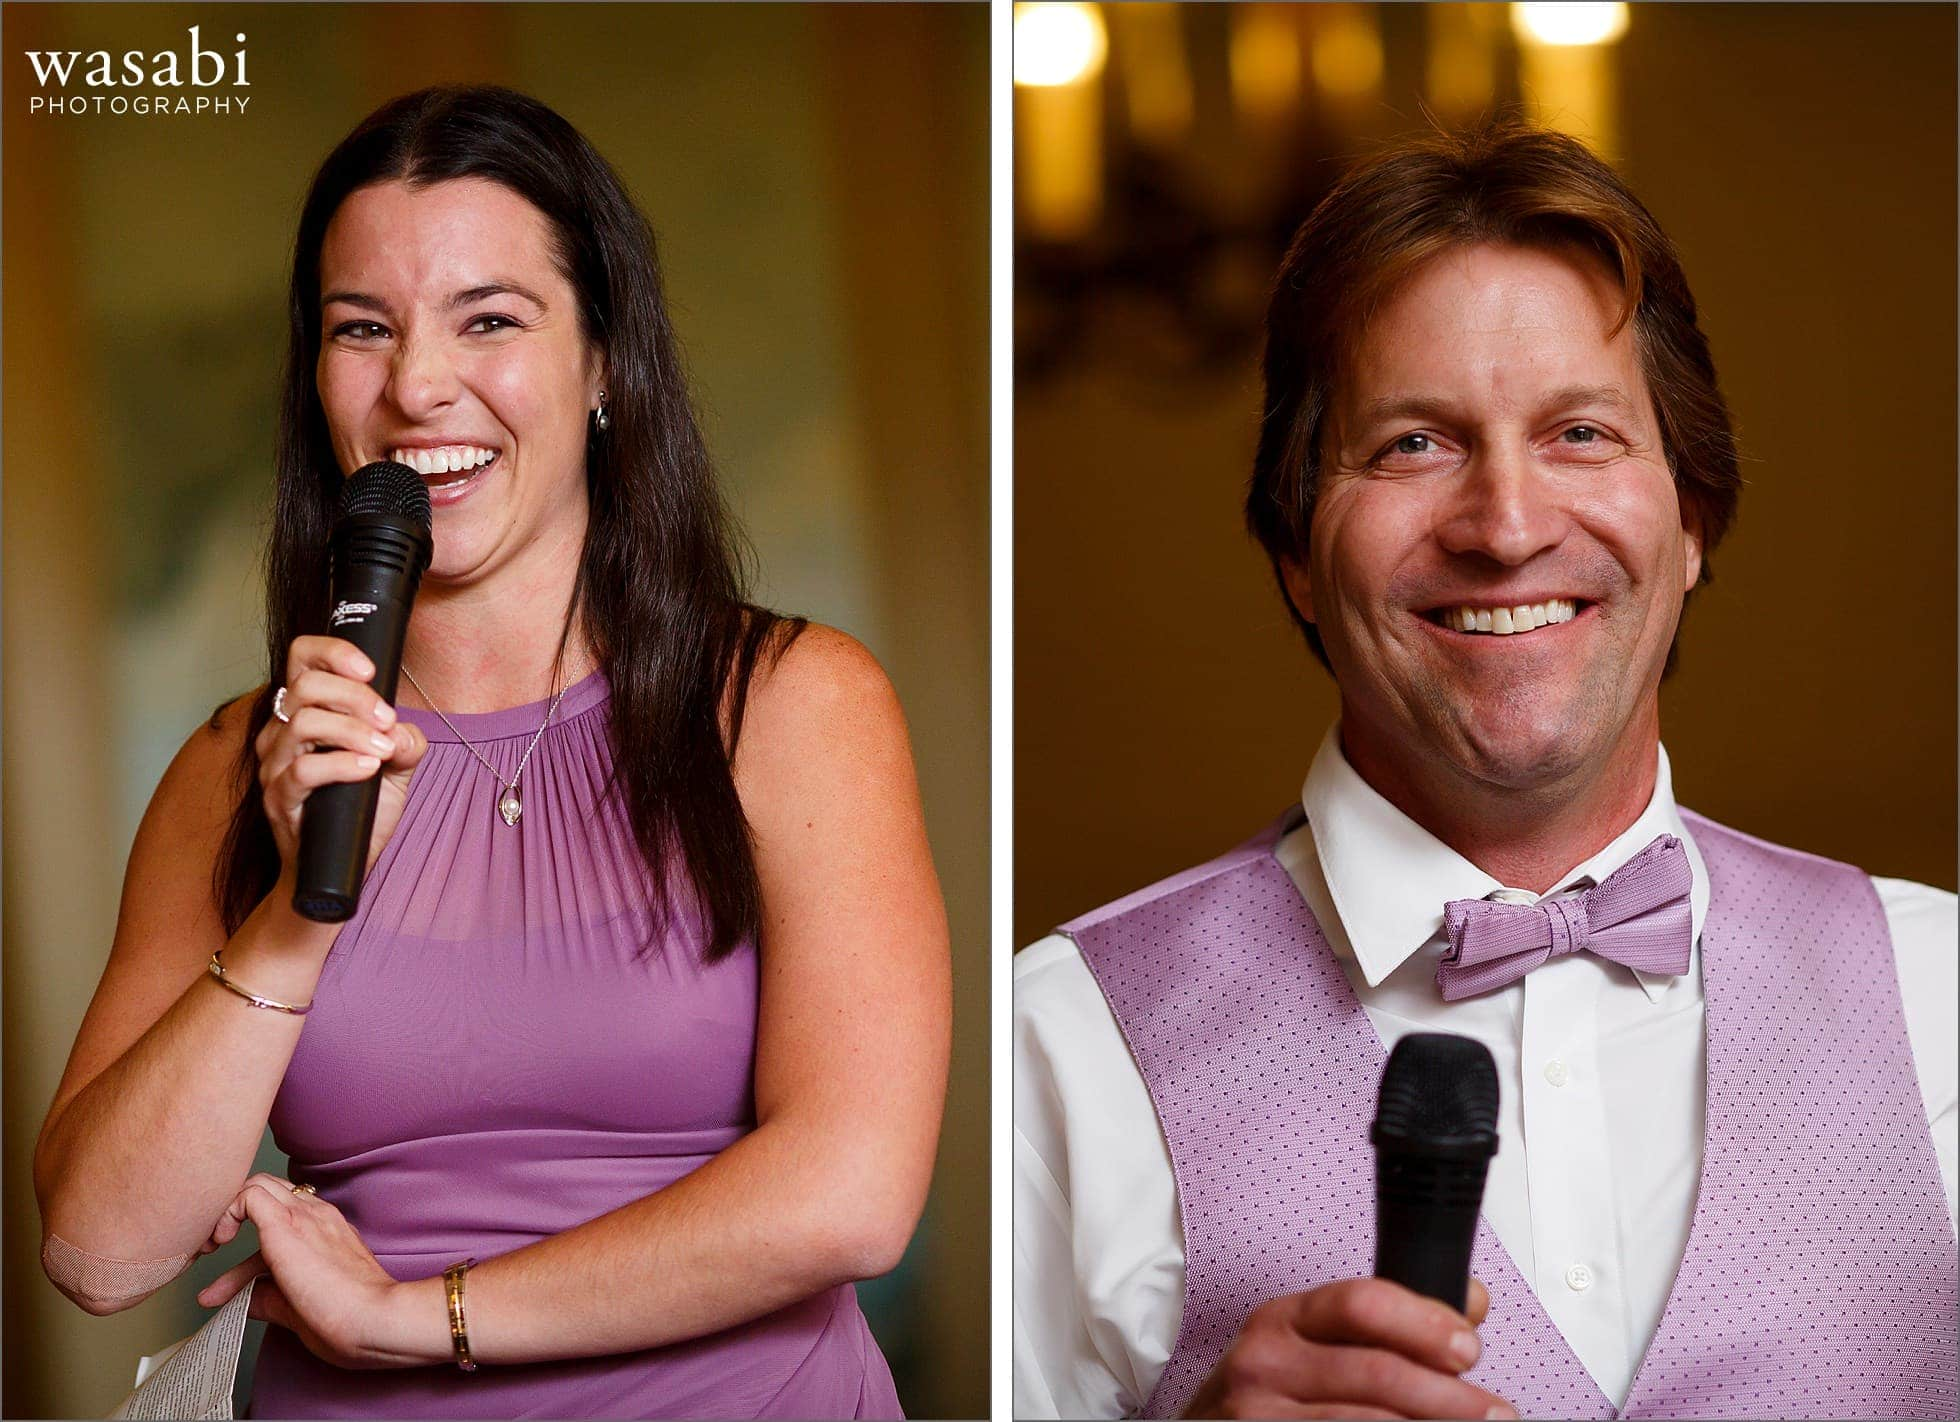 bridesmaid and groomsman give toasts during wedding reception at Cheney Mansion in Oak Park